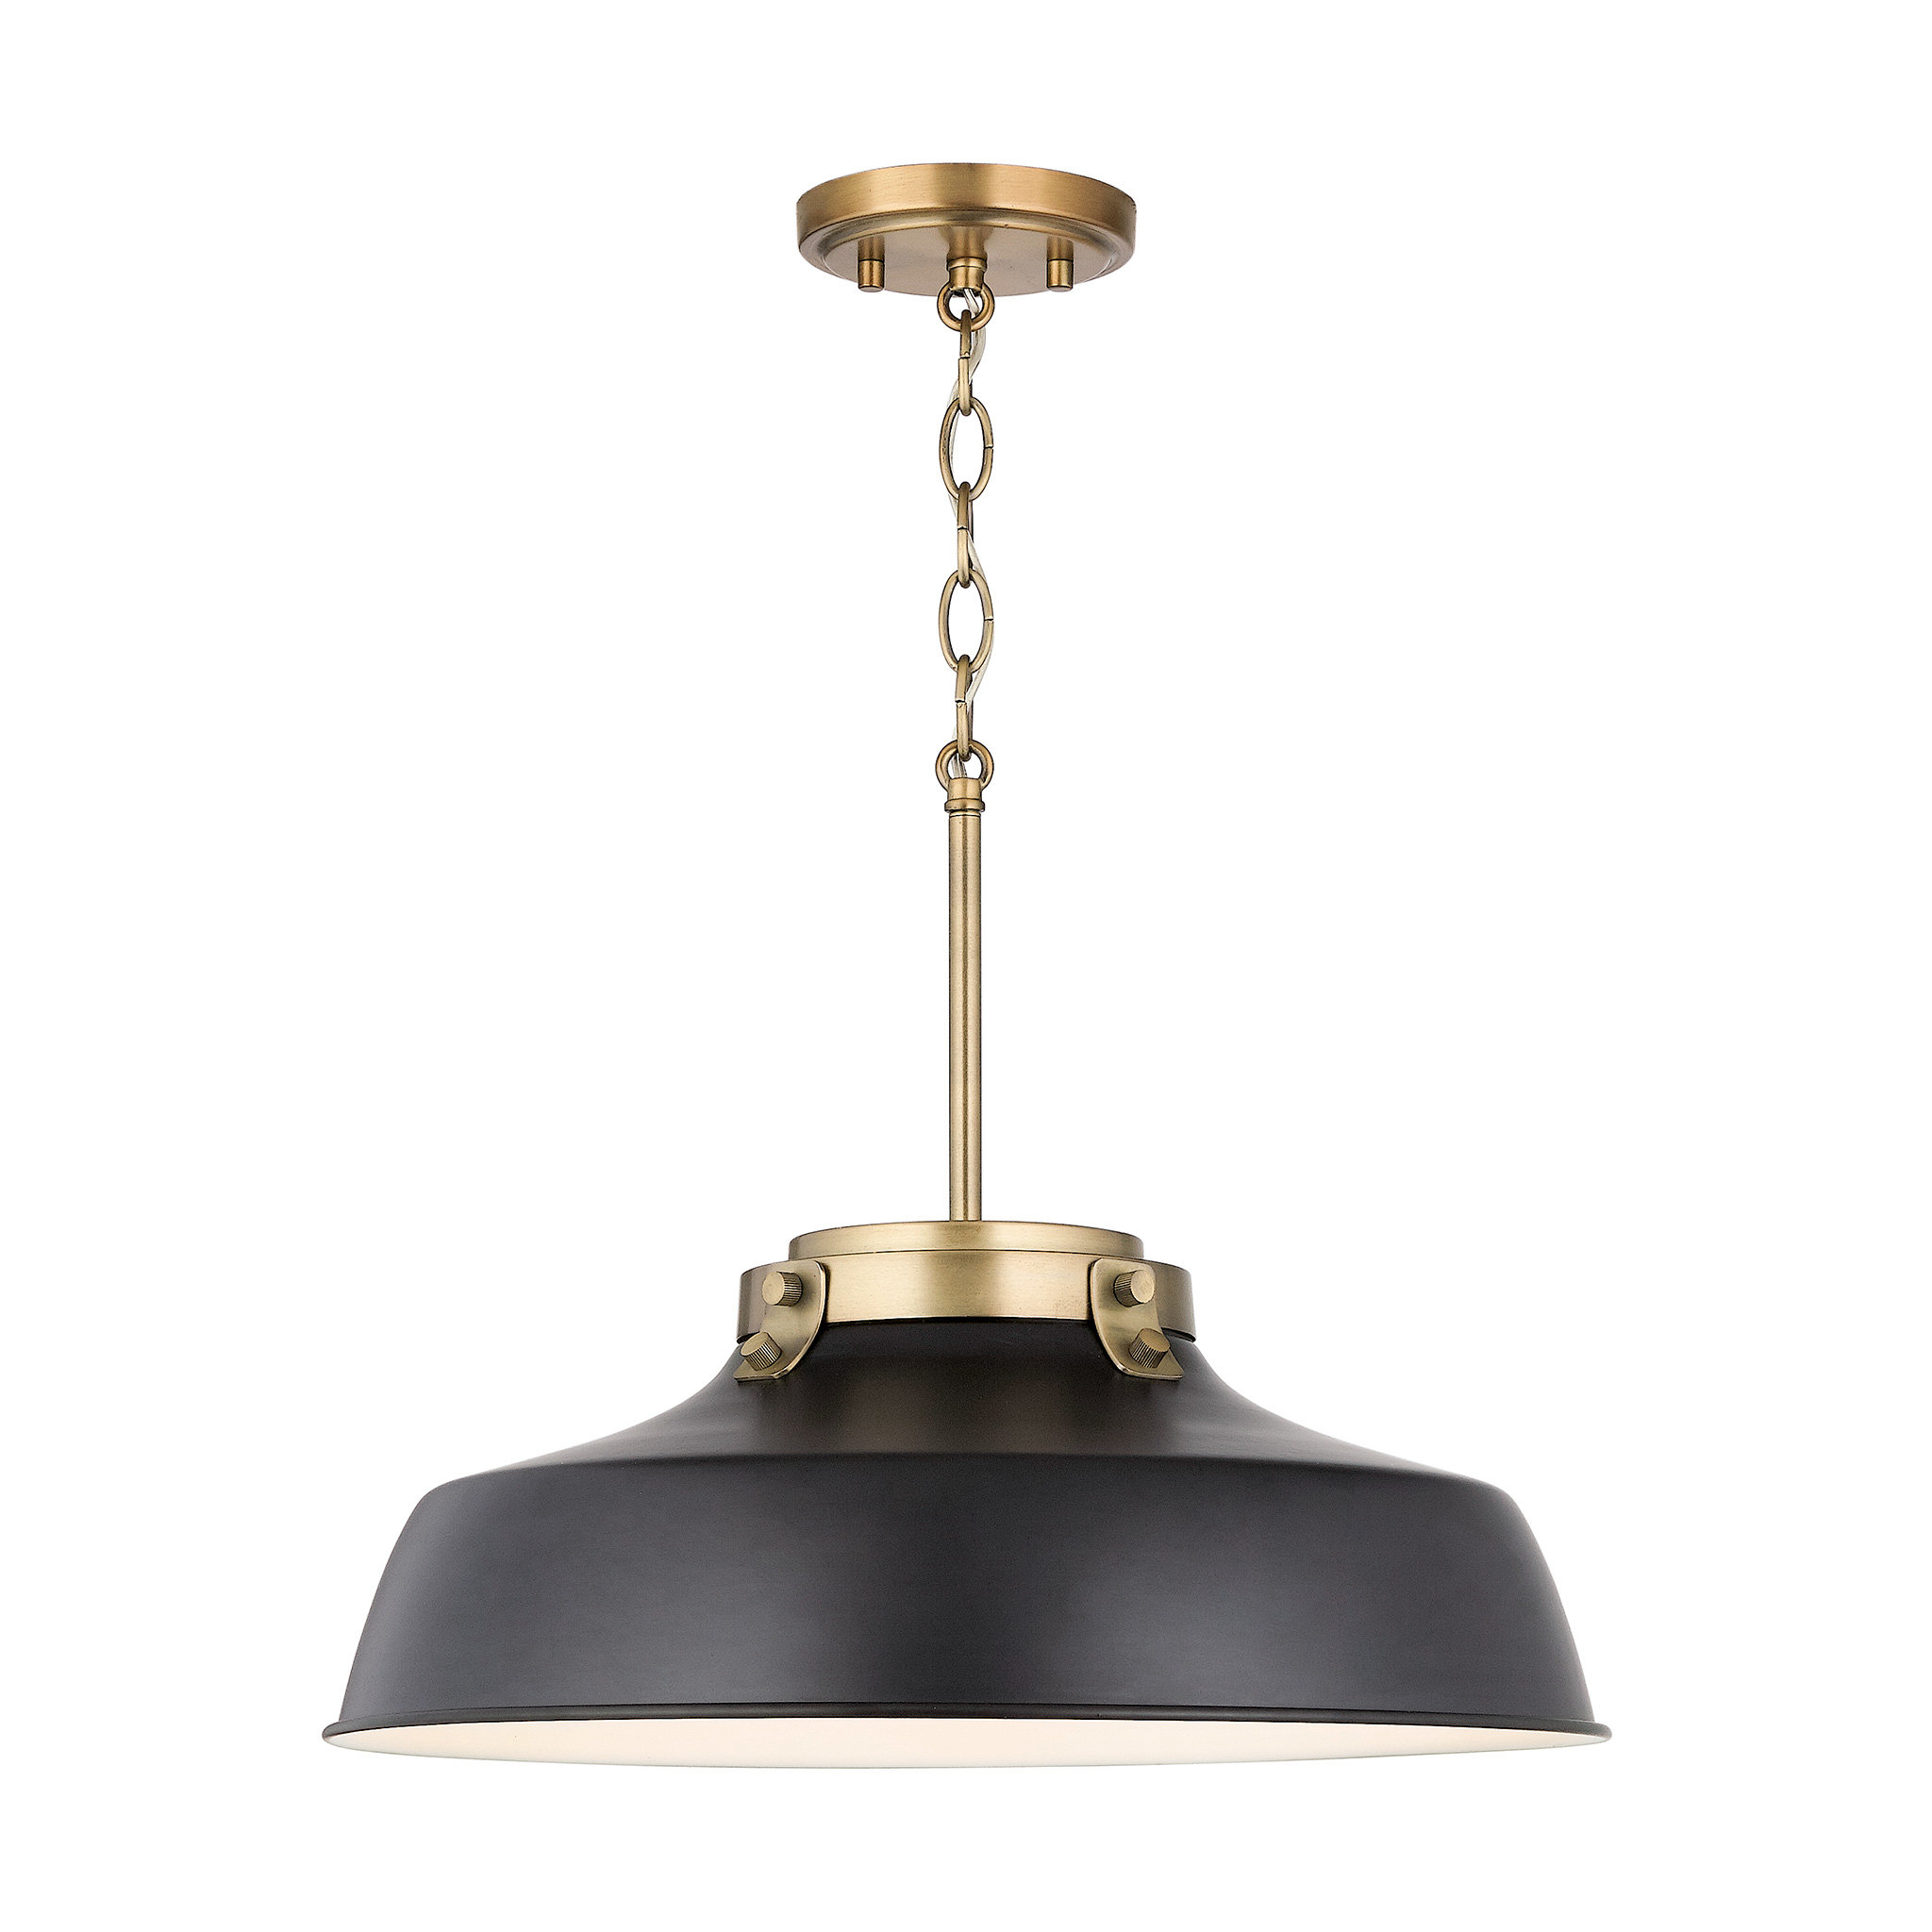 1 Light Dome Pendant In Most Popular Ryker 1 Light Single Dome Pendants (Gallery 13 of 20)